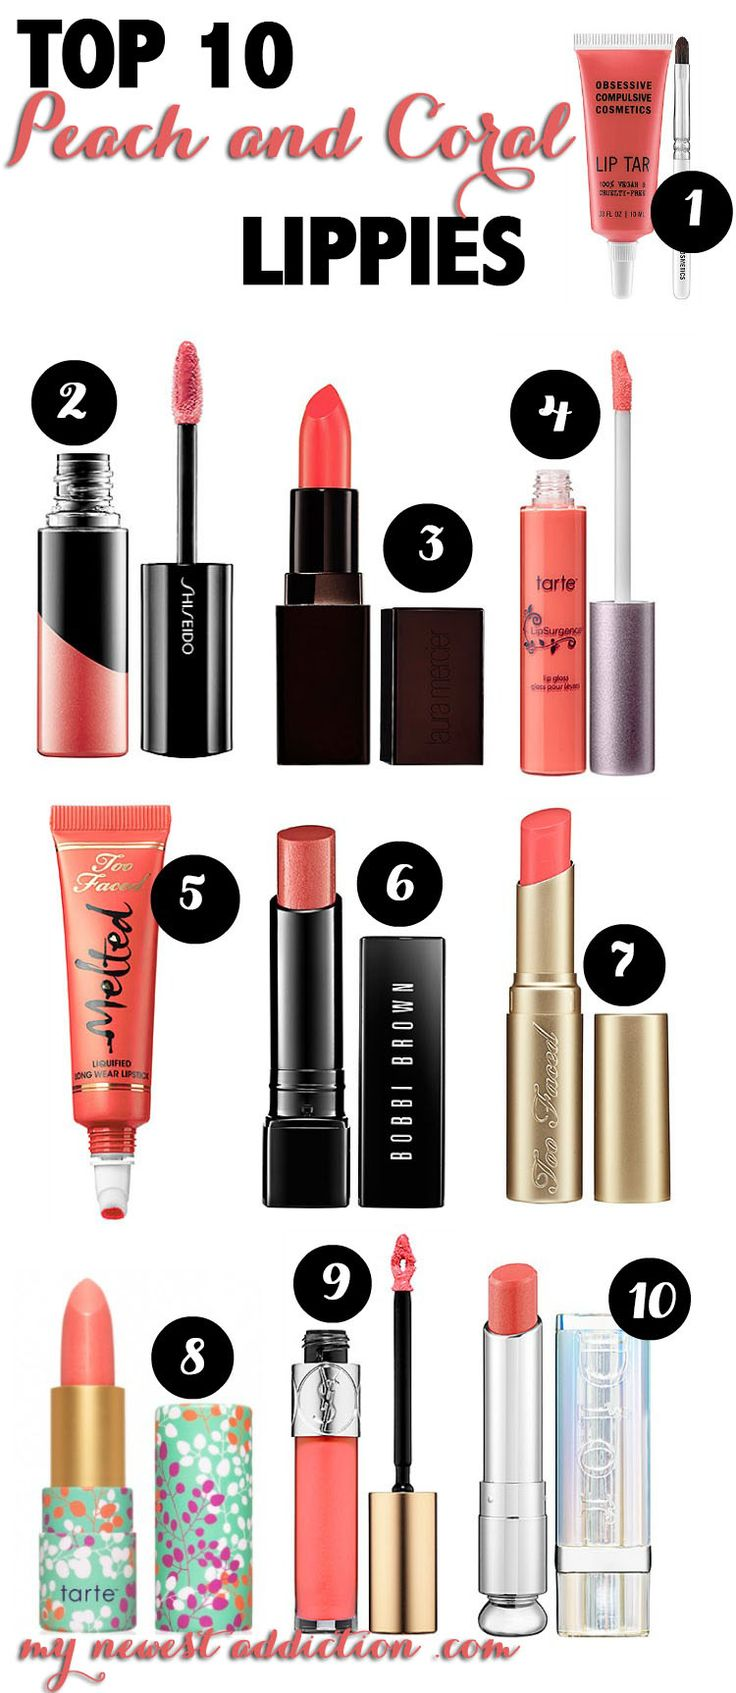 Top 10 Peach and Coral Lippies - My Newest Addiction Beauty Blog